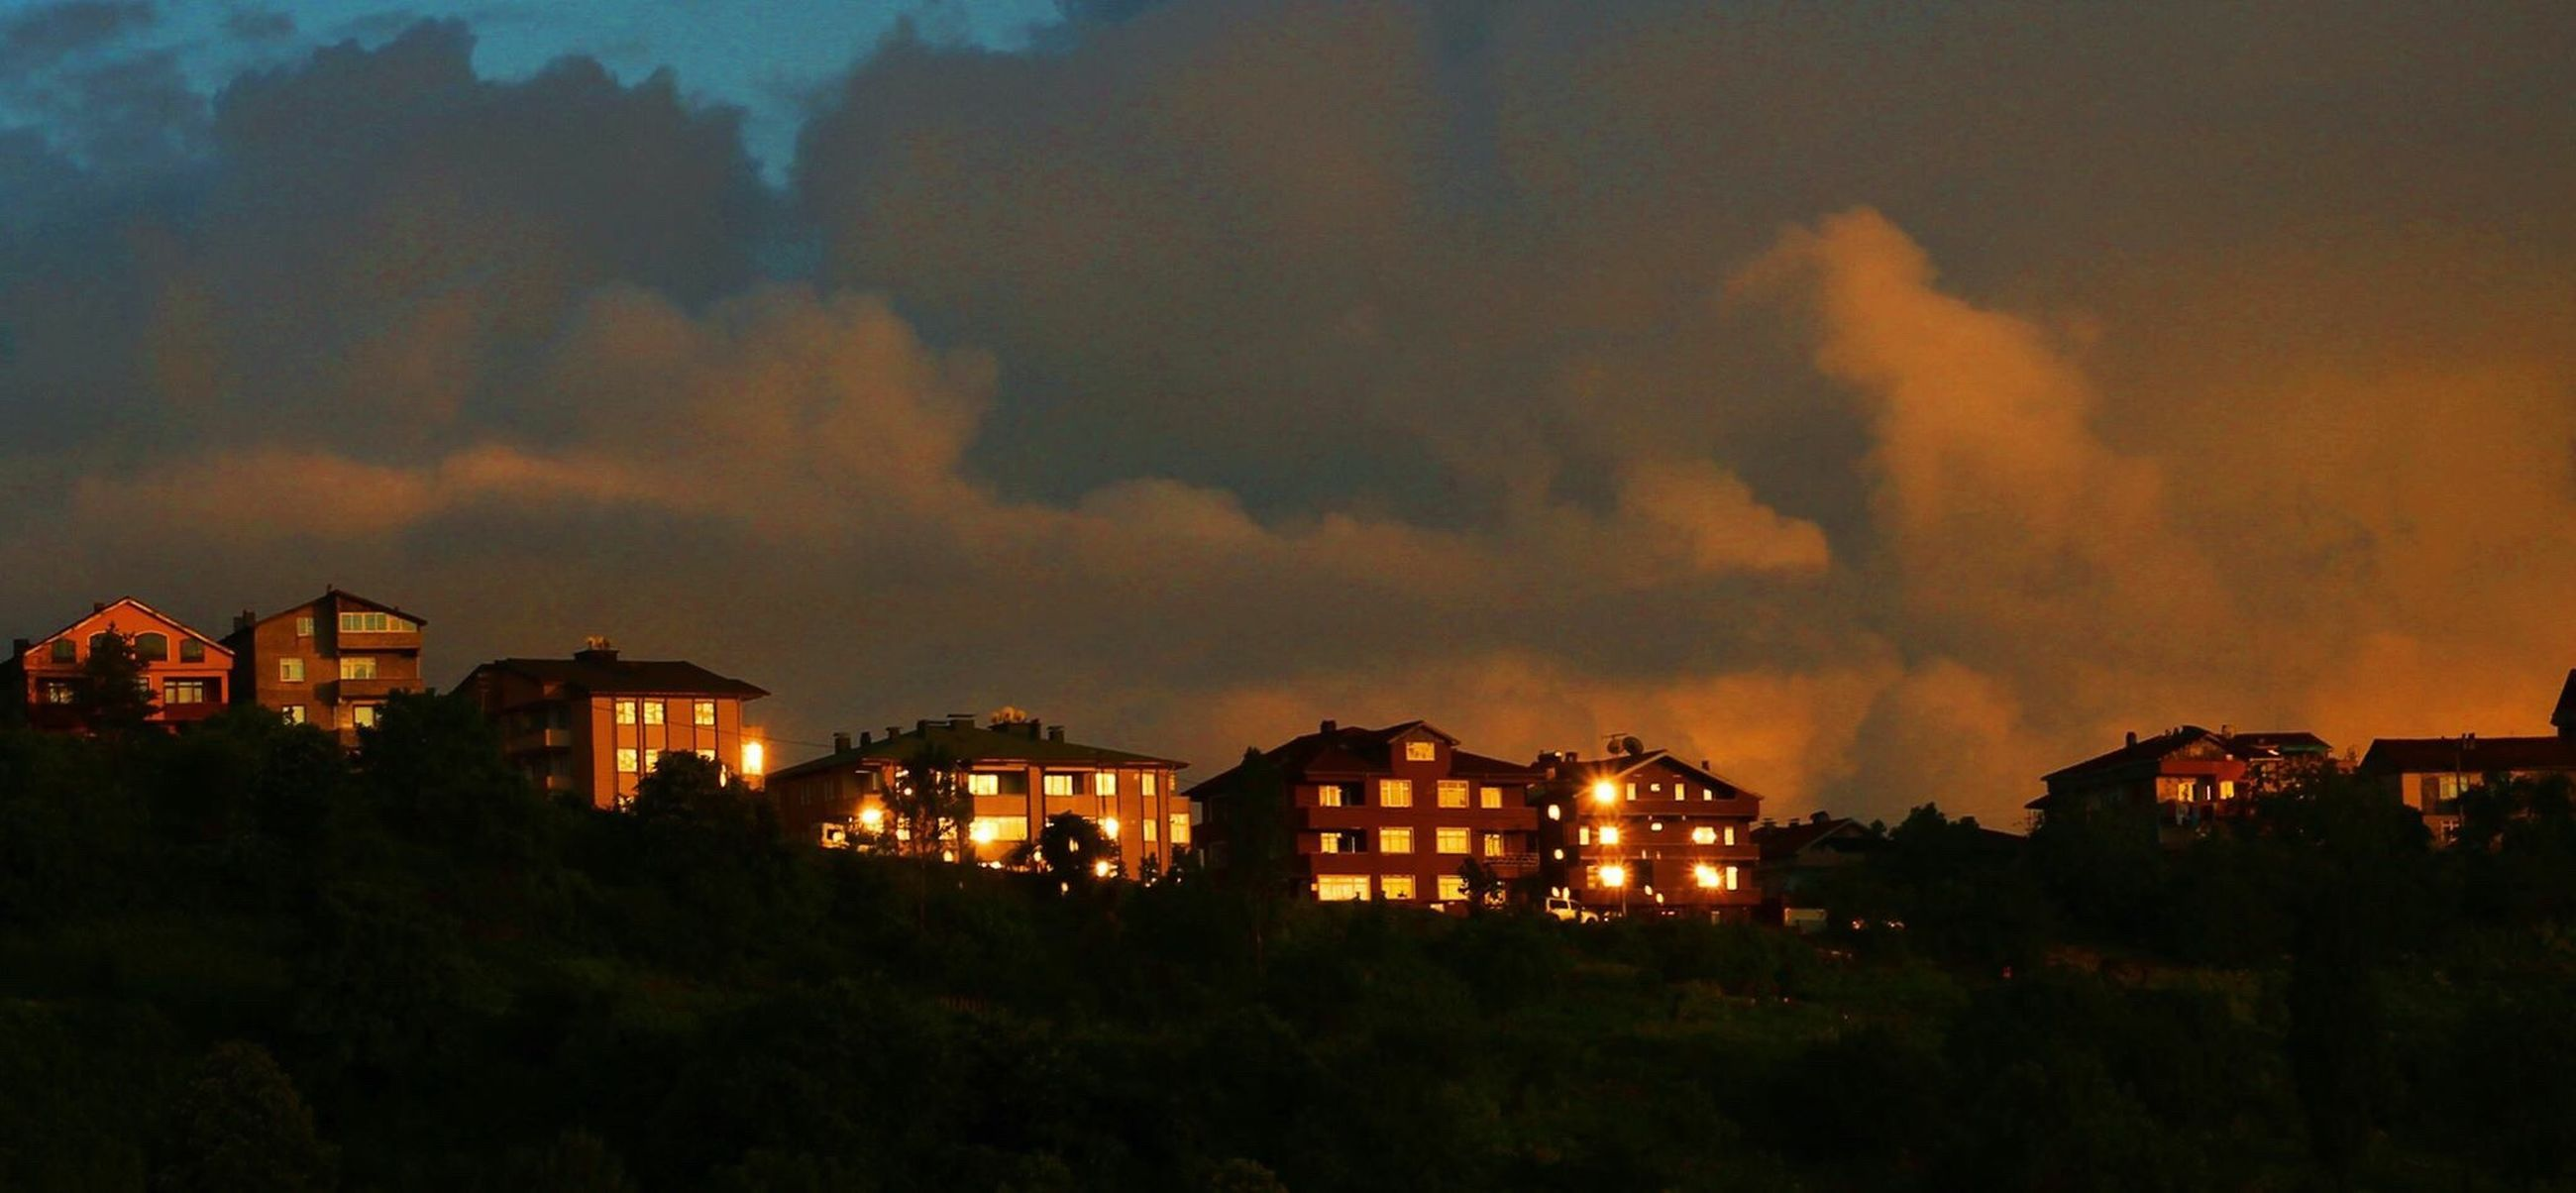 building exterior, architecture, built structure, illuminated, sky, sunset, house, residential building, residential structure, tree, city, dusk, night, cloud - sky, residential district, outdoors, no people, orange color, nature, town